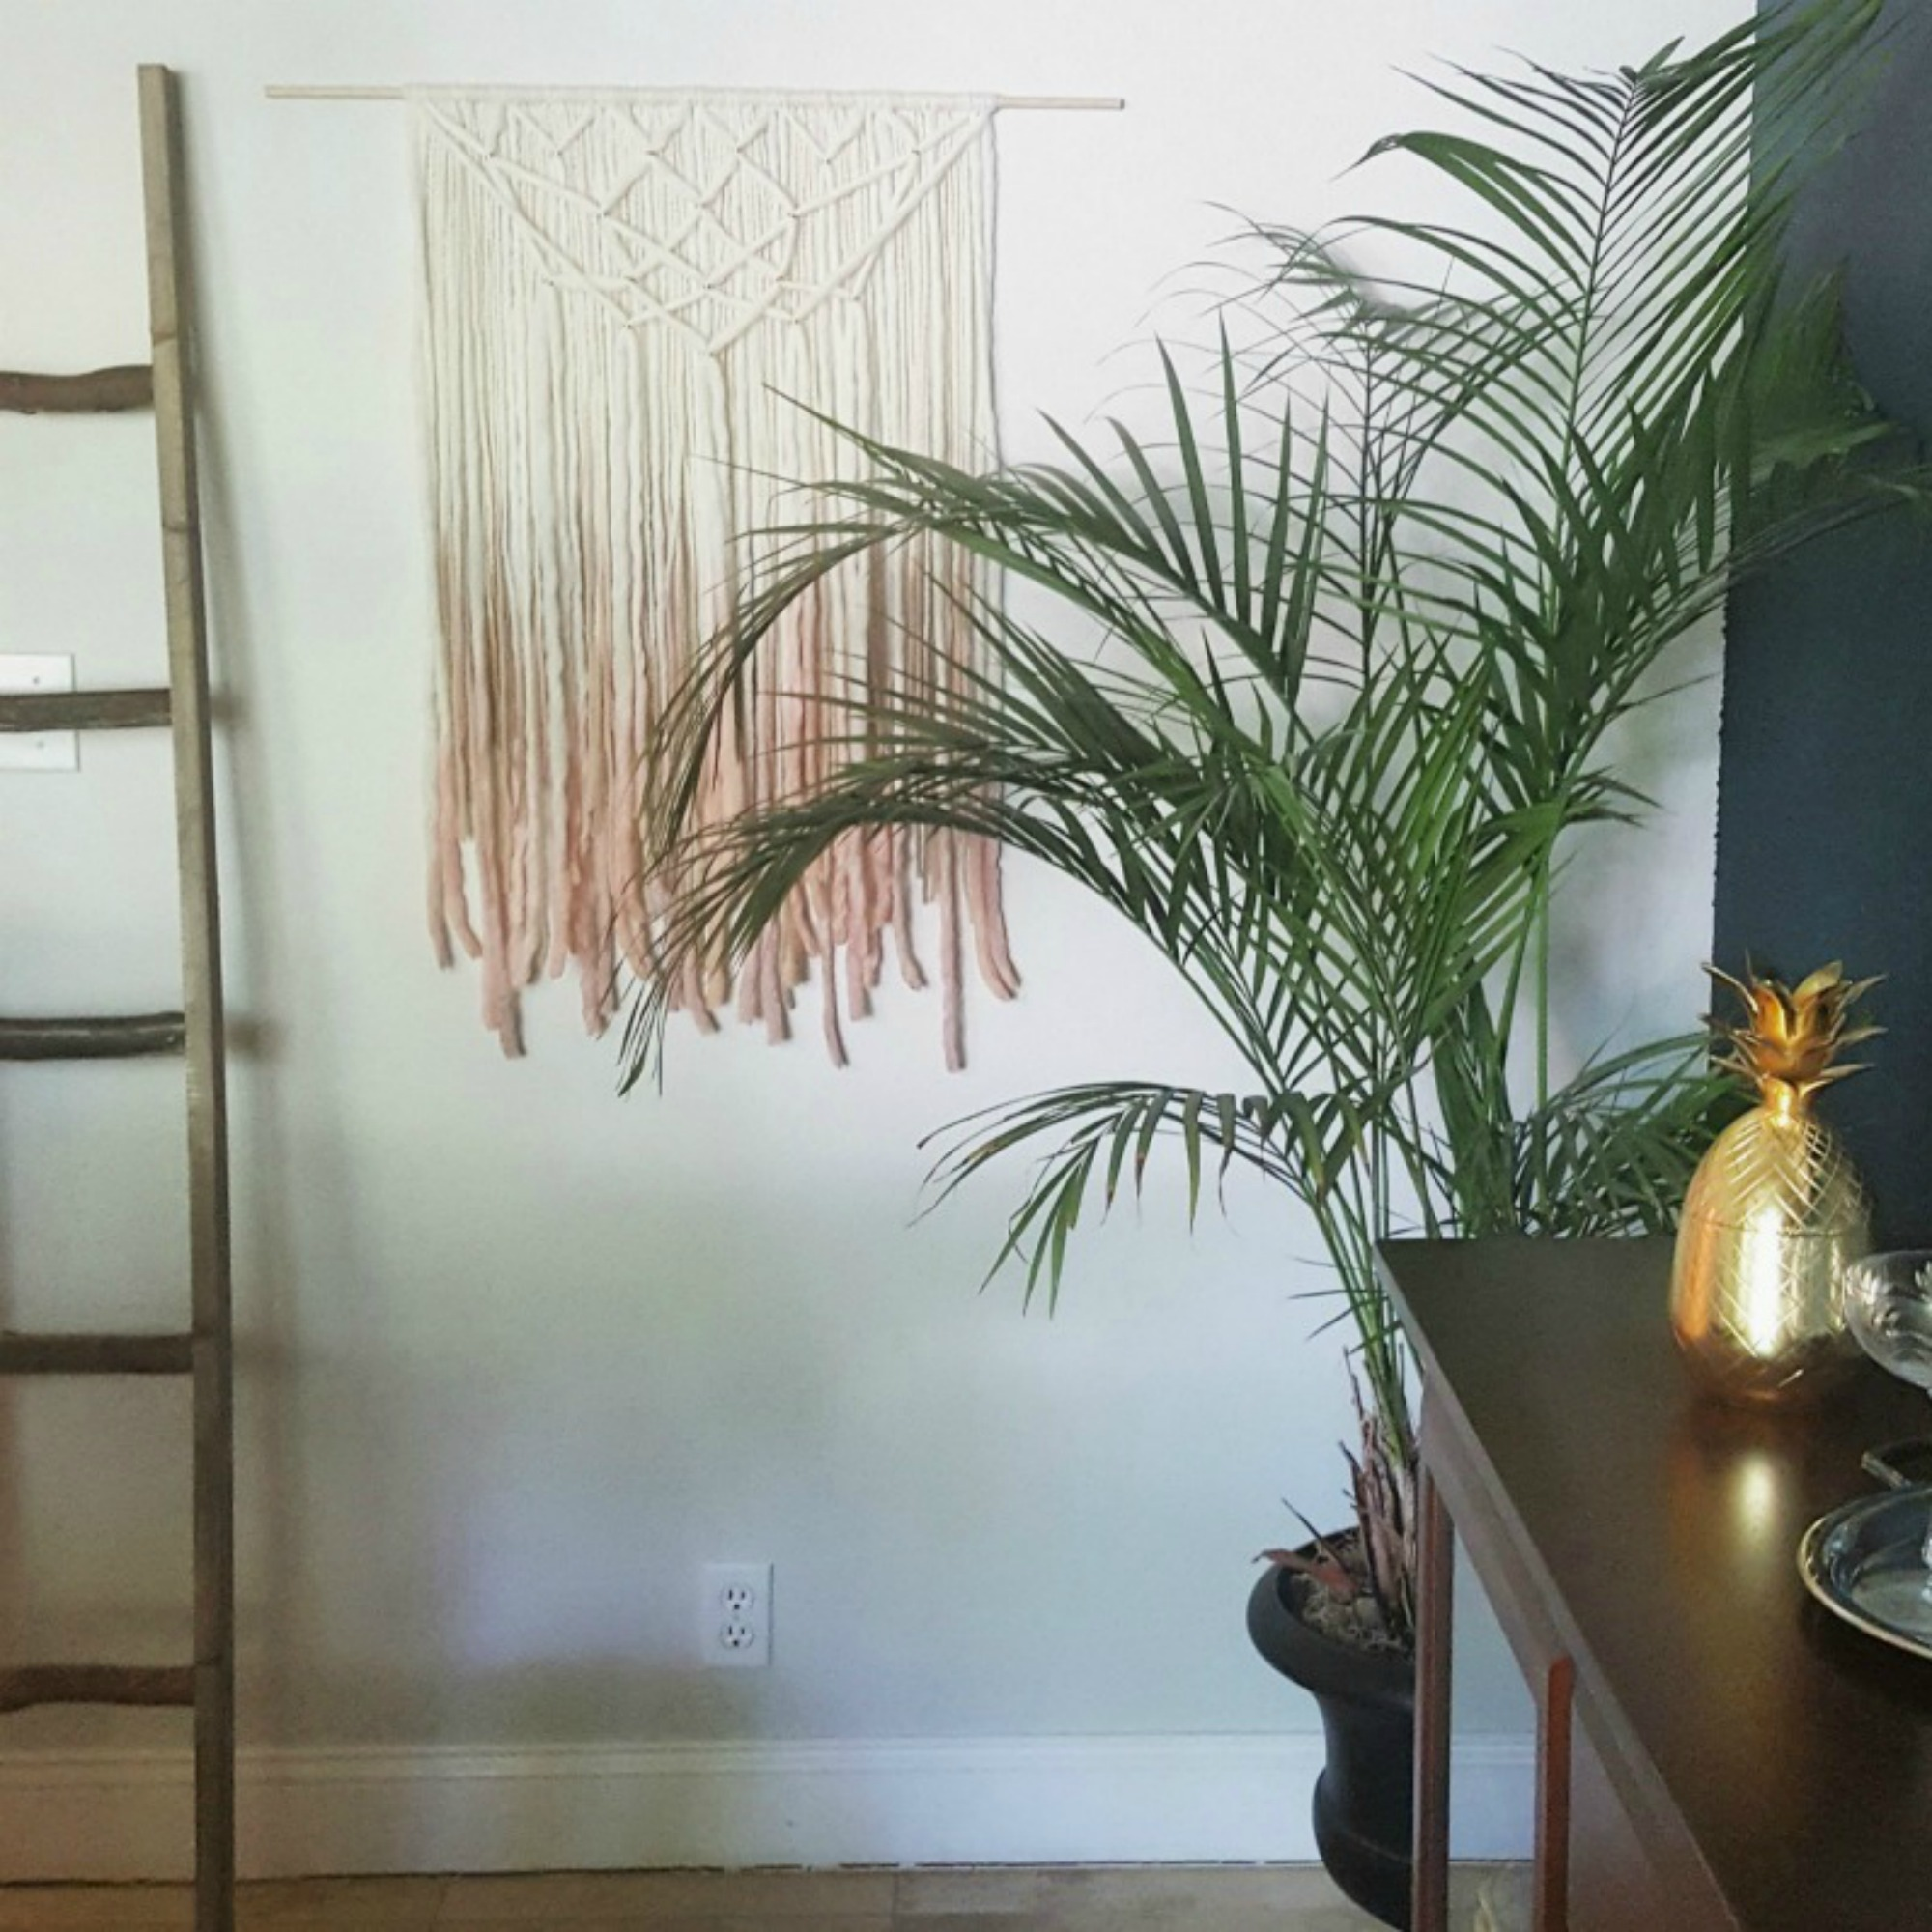 Fiber art and macrame for bohemian flare